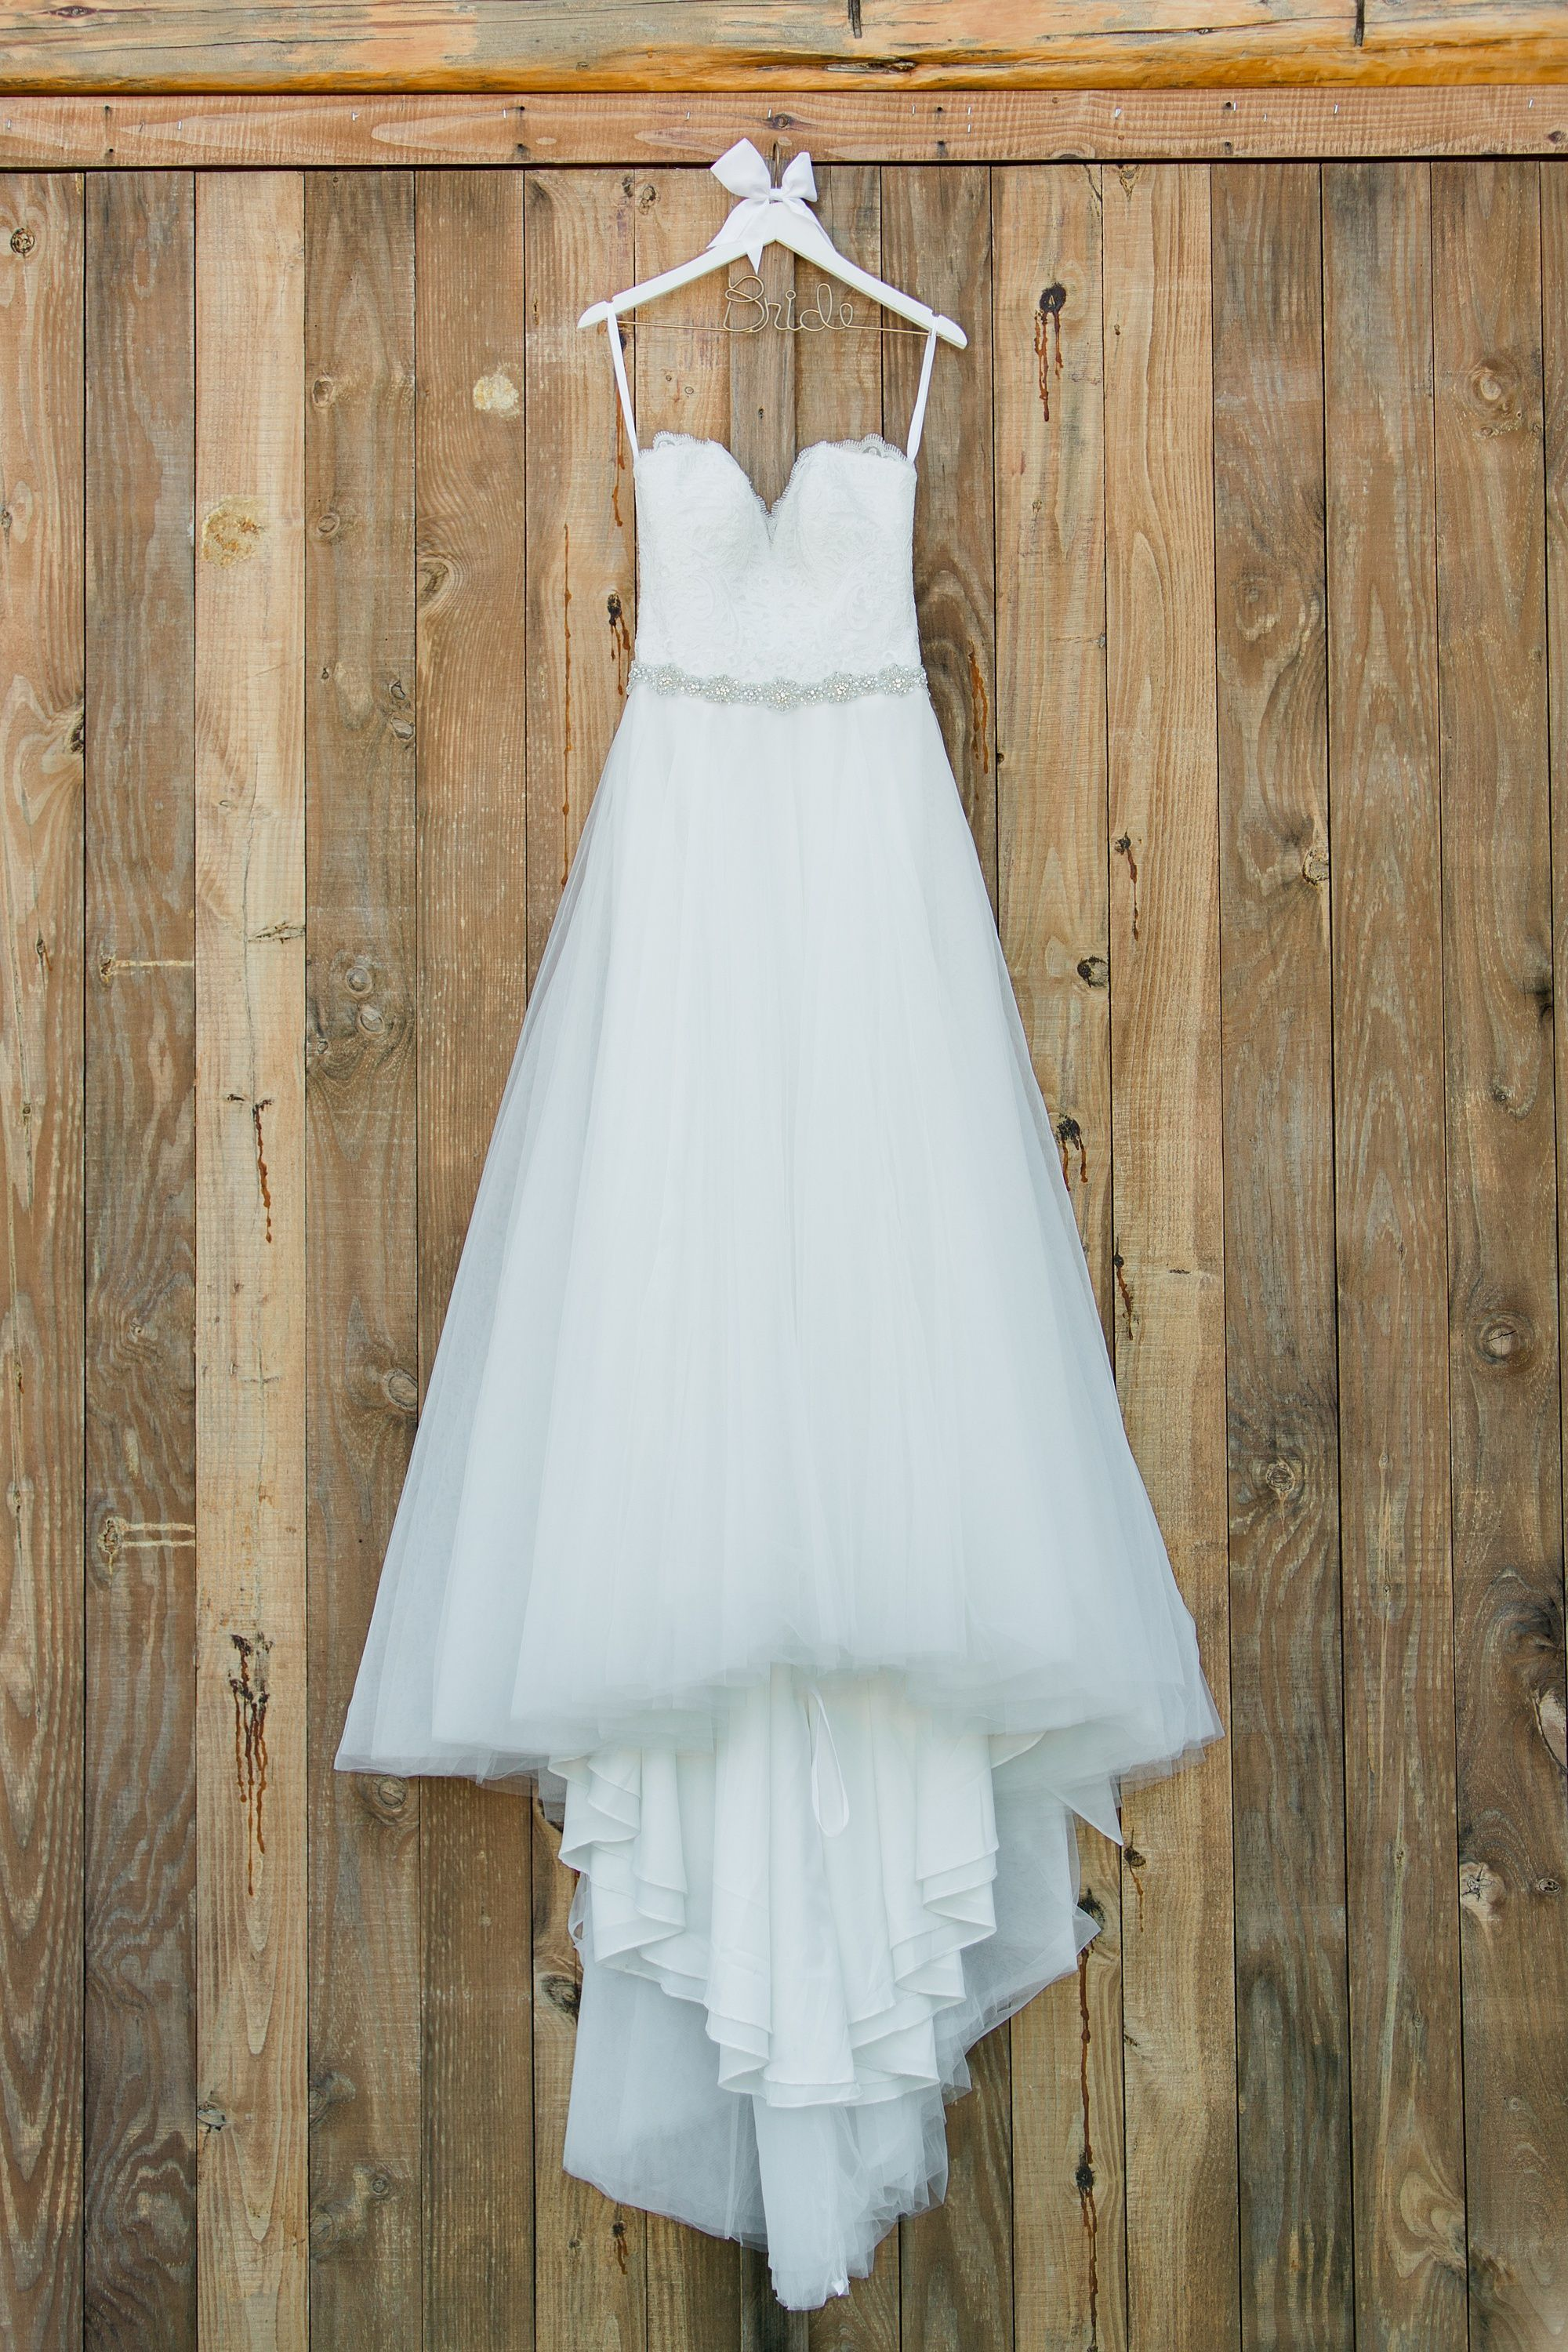 Dresses for a country wedding  Beautiful wedding gown for an outdoor wedding  Kicking Off their